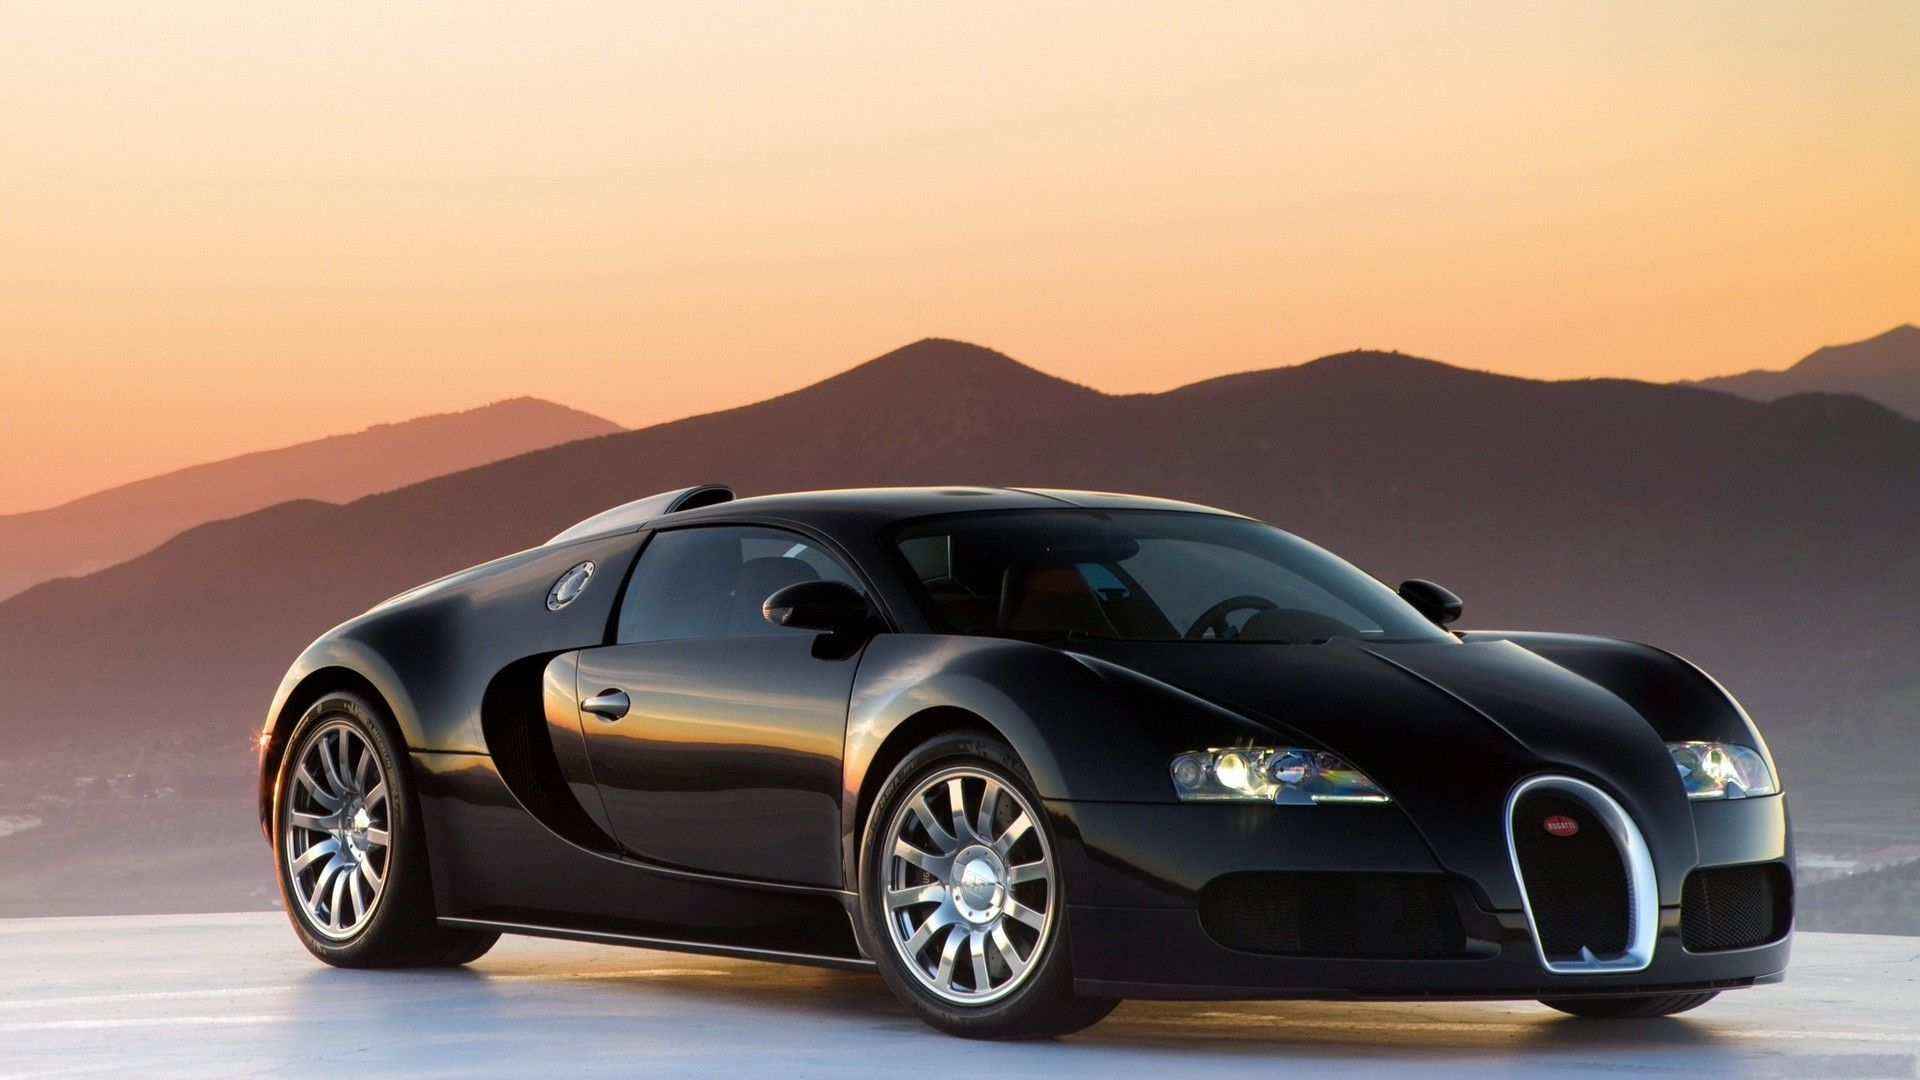 Bugatti Veyron Hd Desktop Wallpaper Is Hd Wallpaper For Desktop Background Iphone Computer